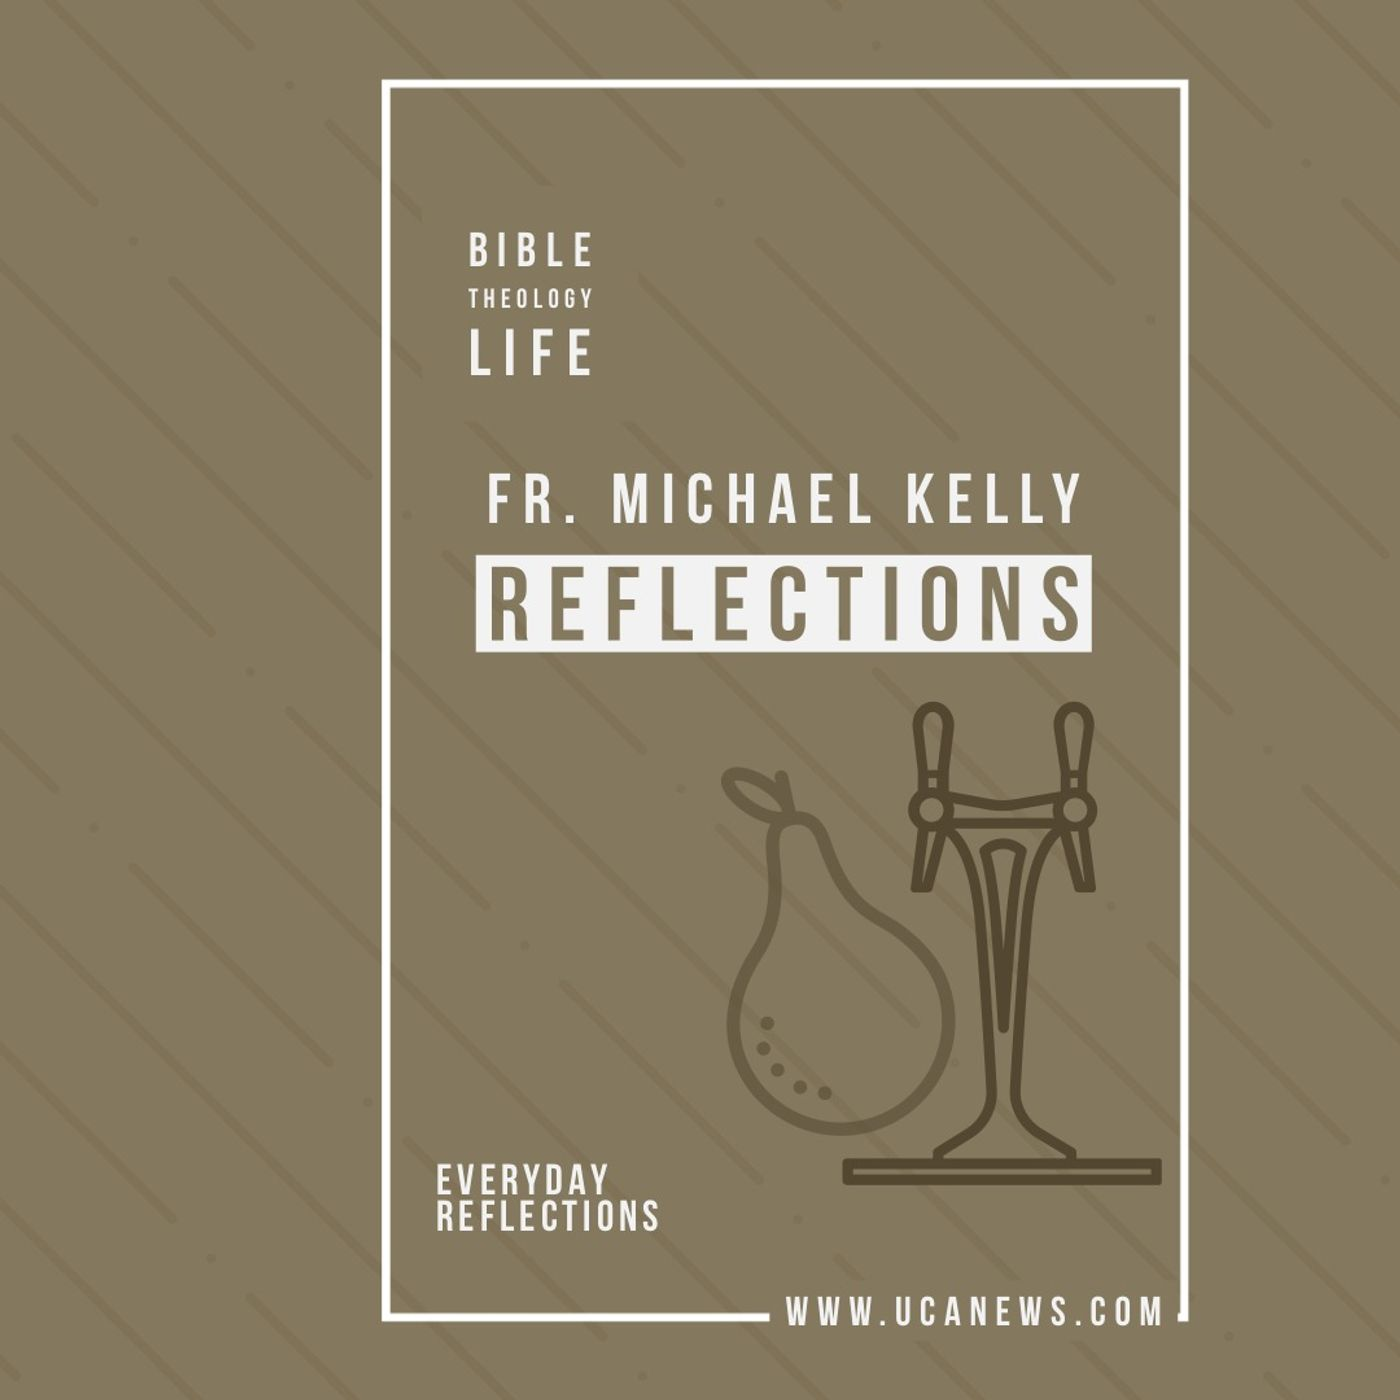 Reflections with Fr. Michael Kelly - Wednesday 23 Jun, 2021